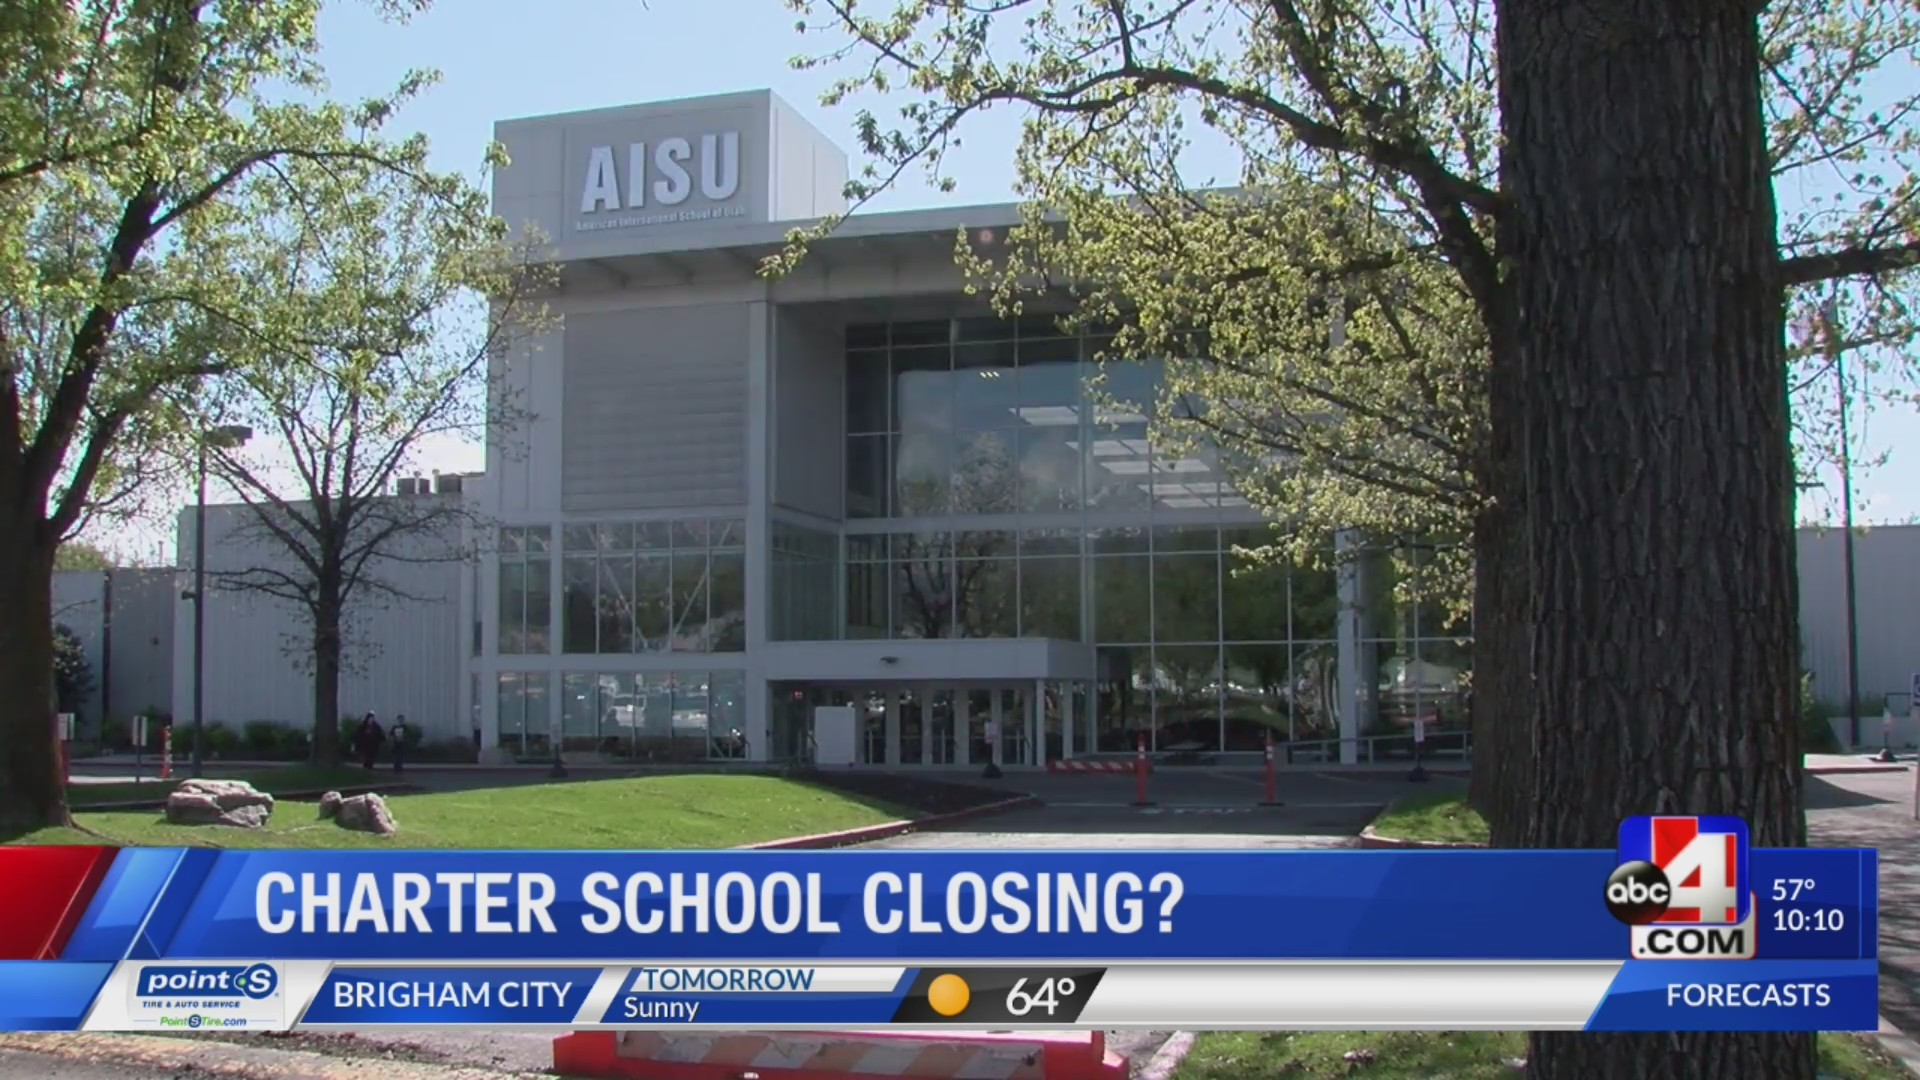 Ignoring the warnings: a charter school closer to closing